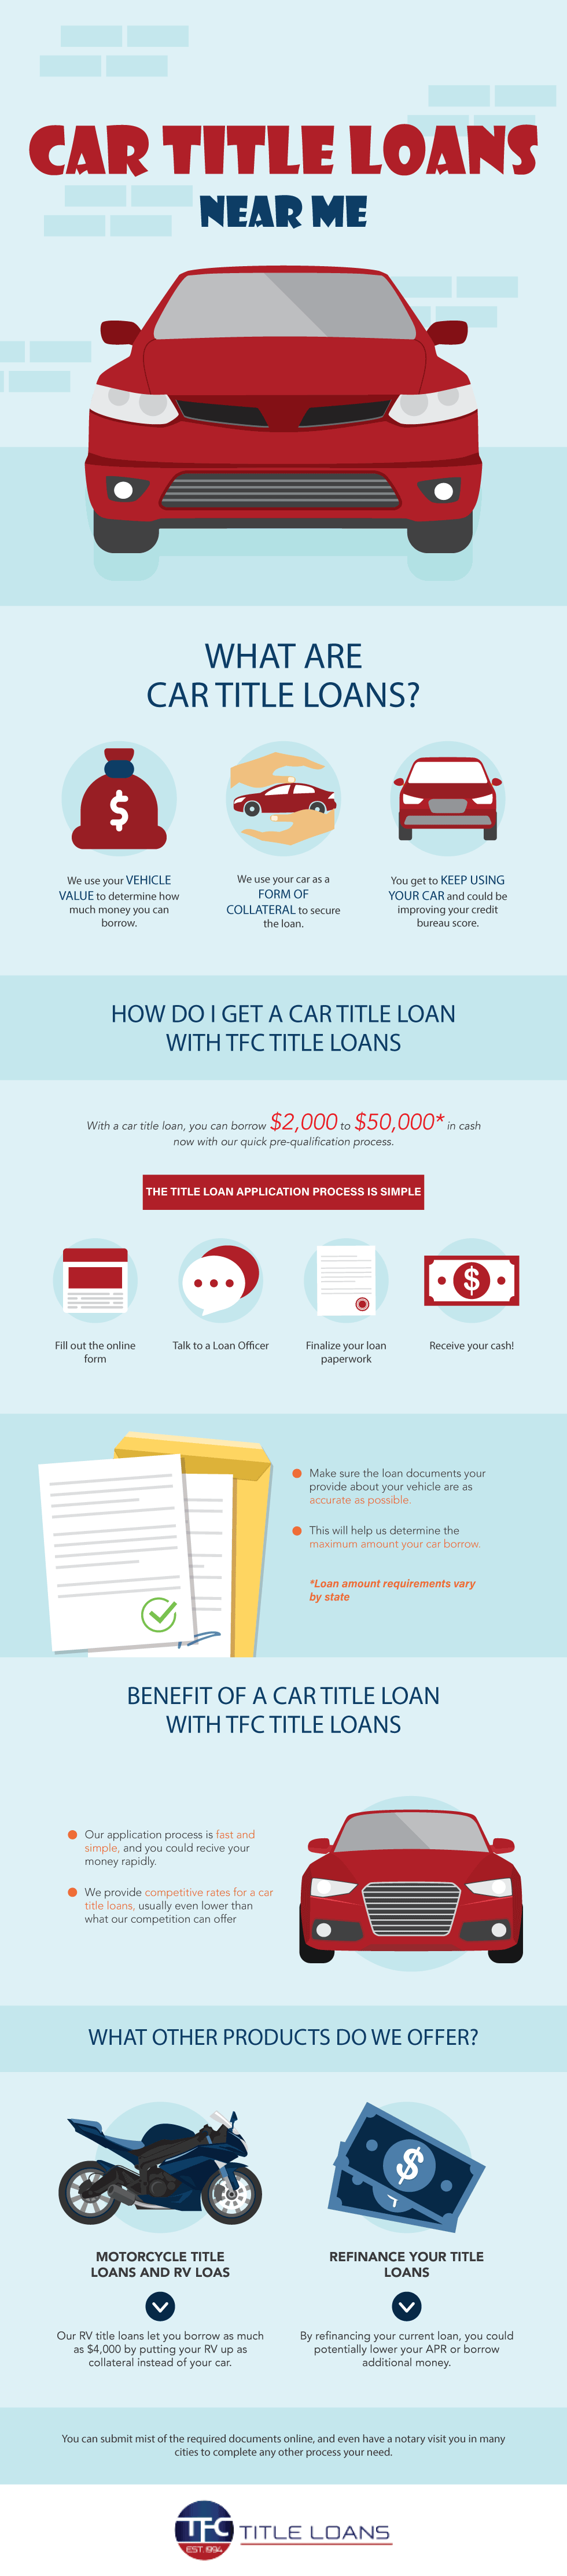 car title loans near me infographic